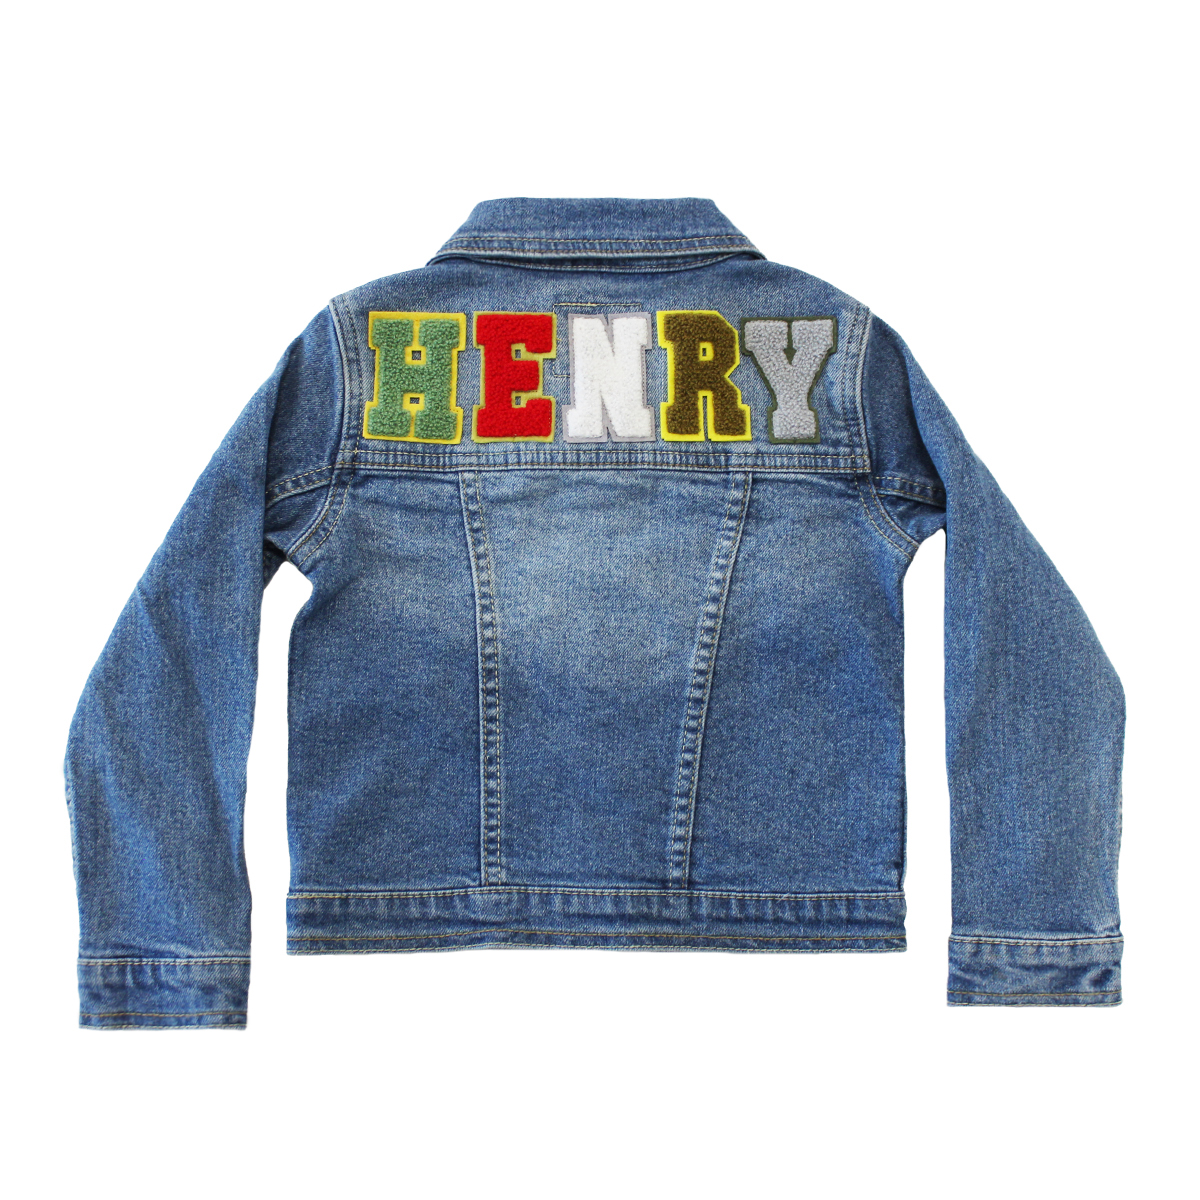 0fdc8c27509c Levi s Personalized Denim Jacket - Letters Only - TheTot